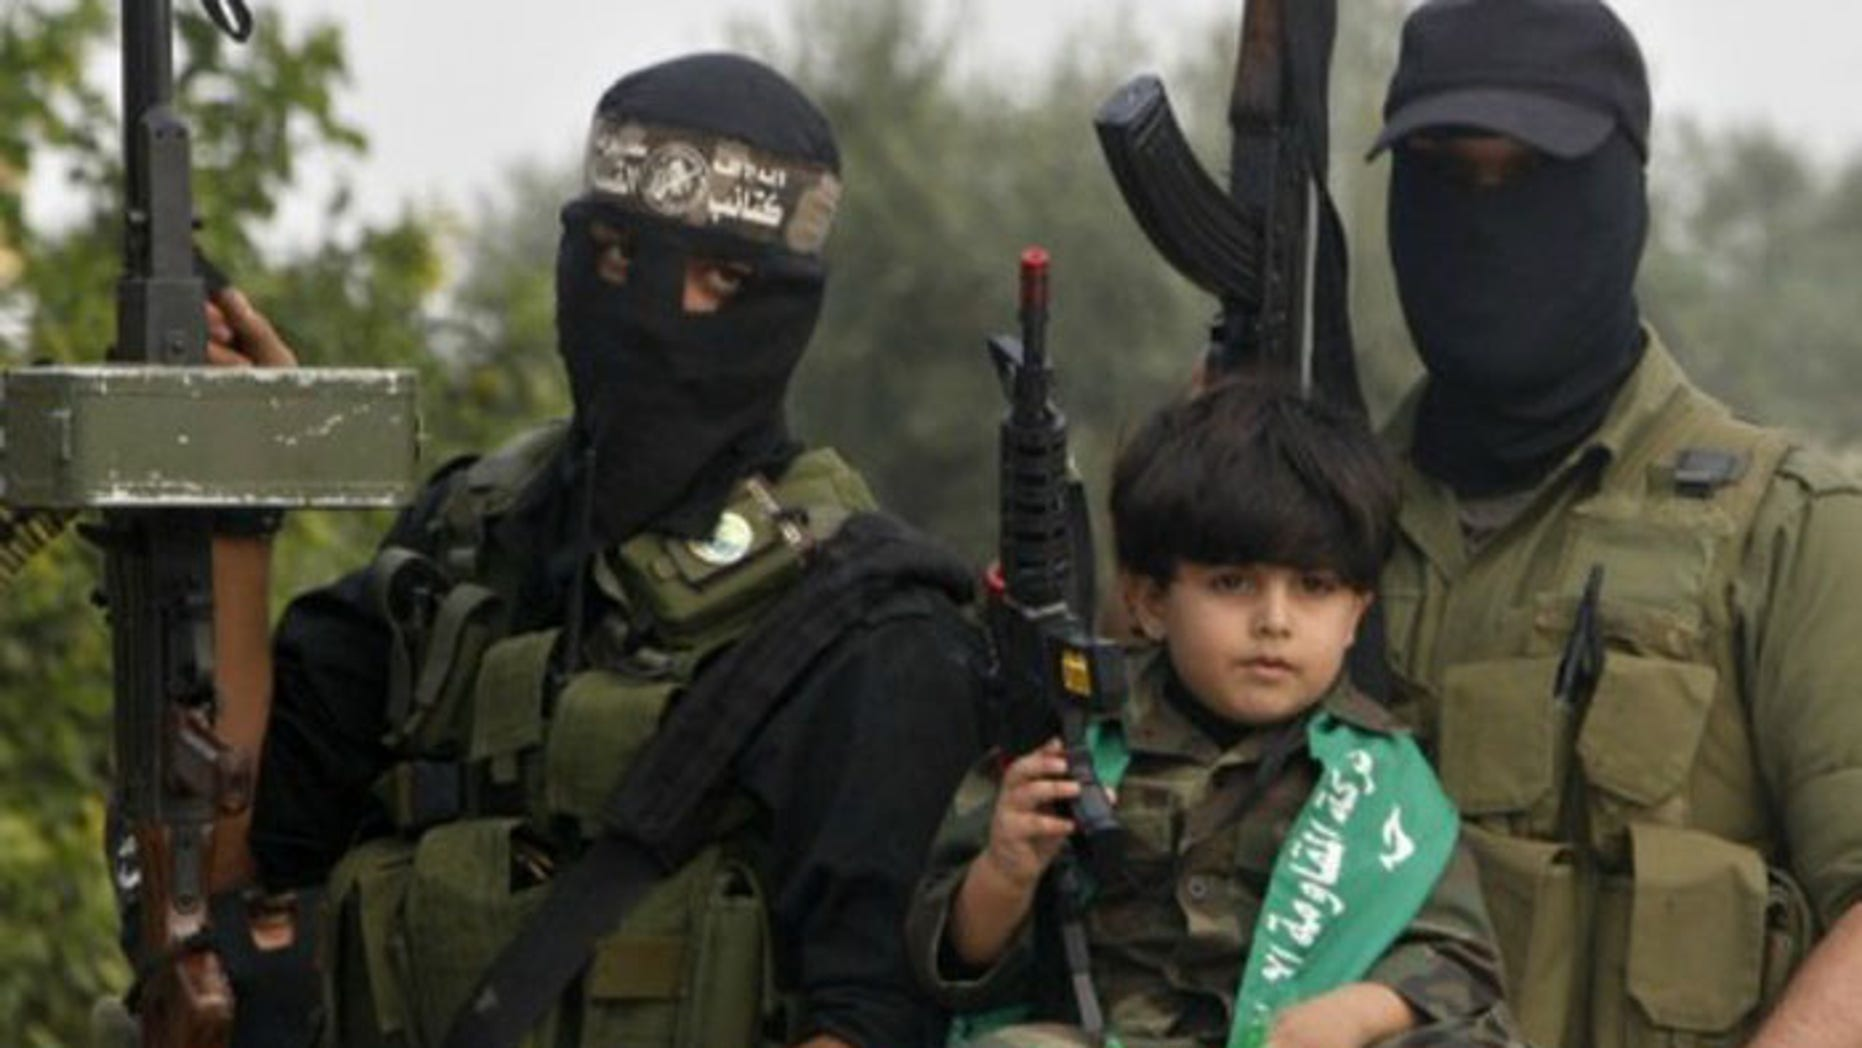 The Israeli group claims that the UN's relief arm works closely with Hamas, which engages in training of child soldiers, in violation of international law. (Reuters)